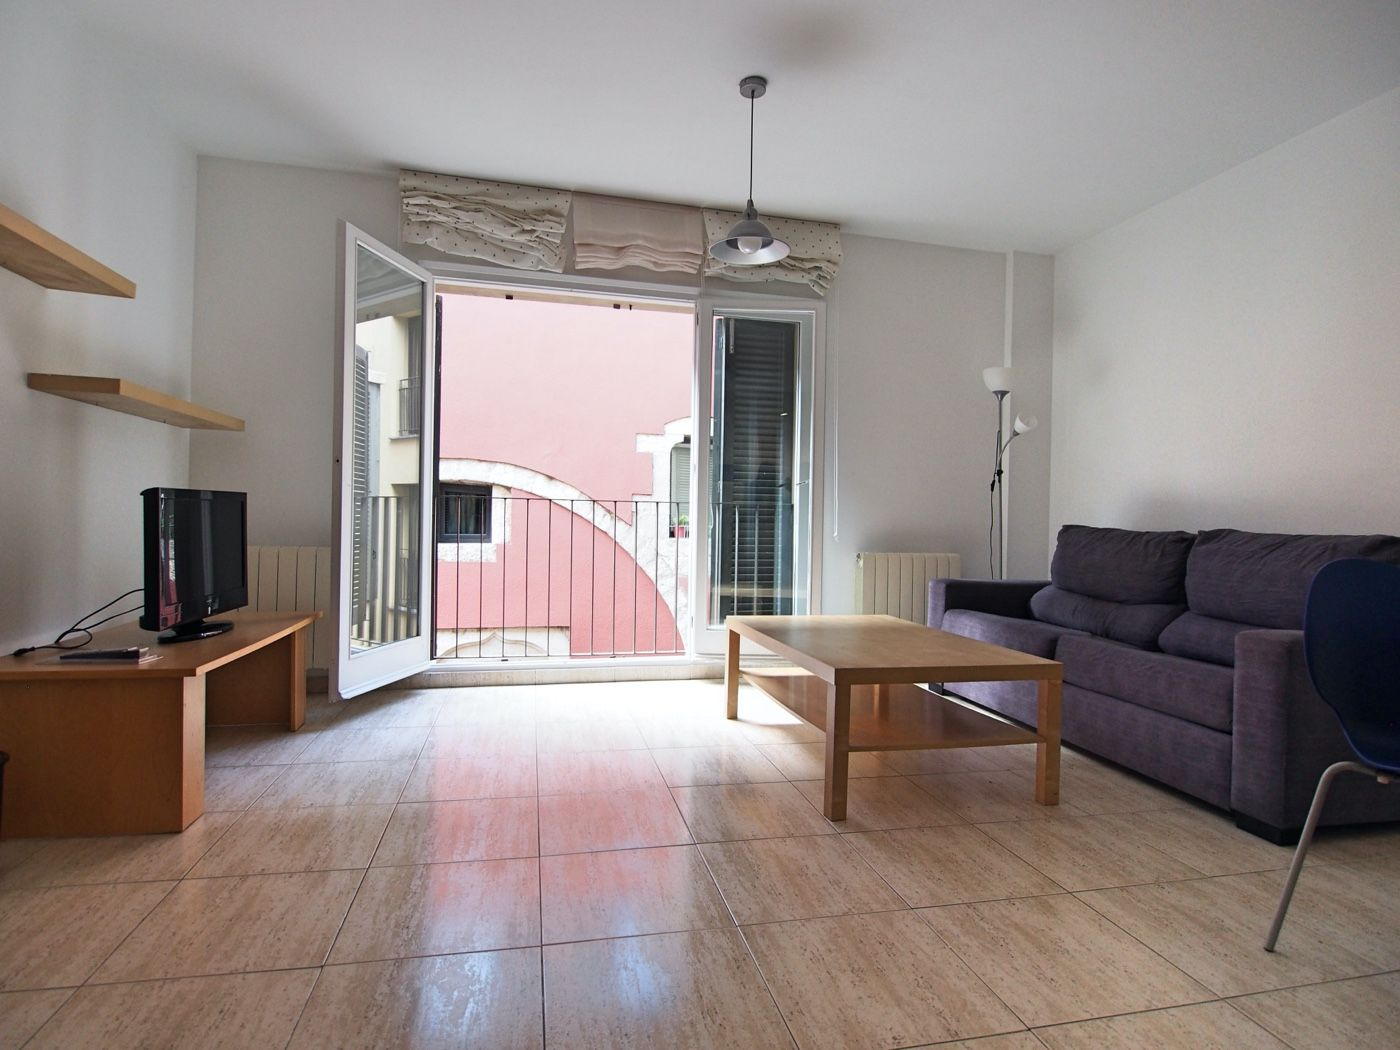 Rent Apartment  Carrer pou rodo. Espacioso piso amueblado